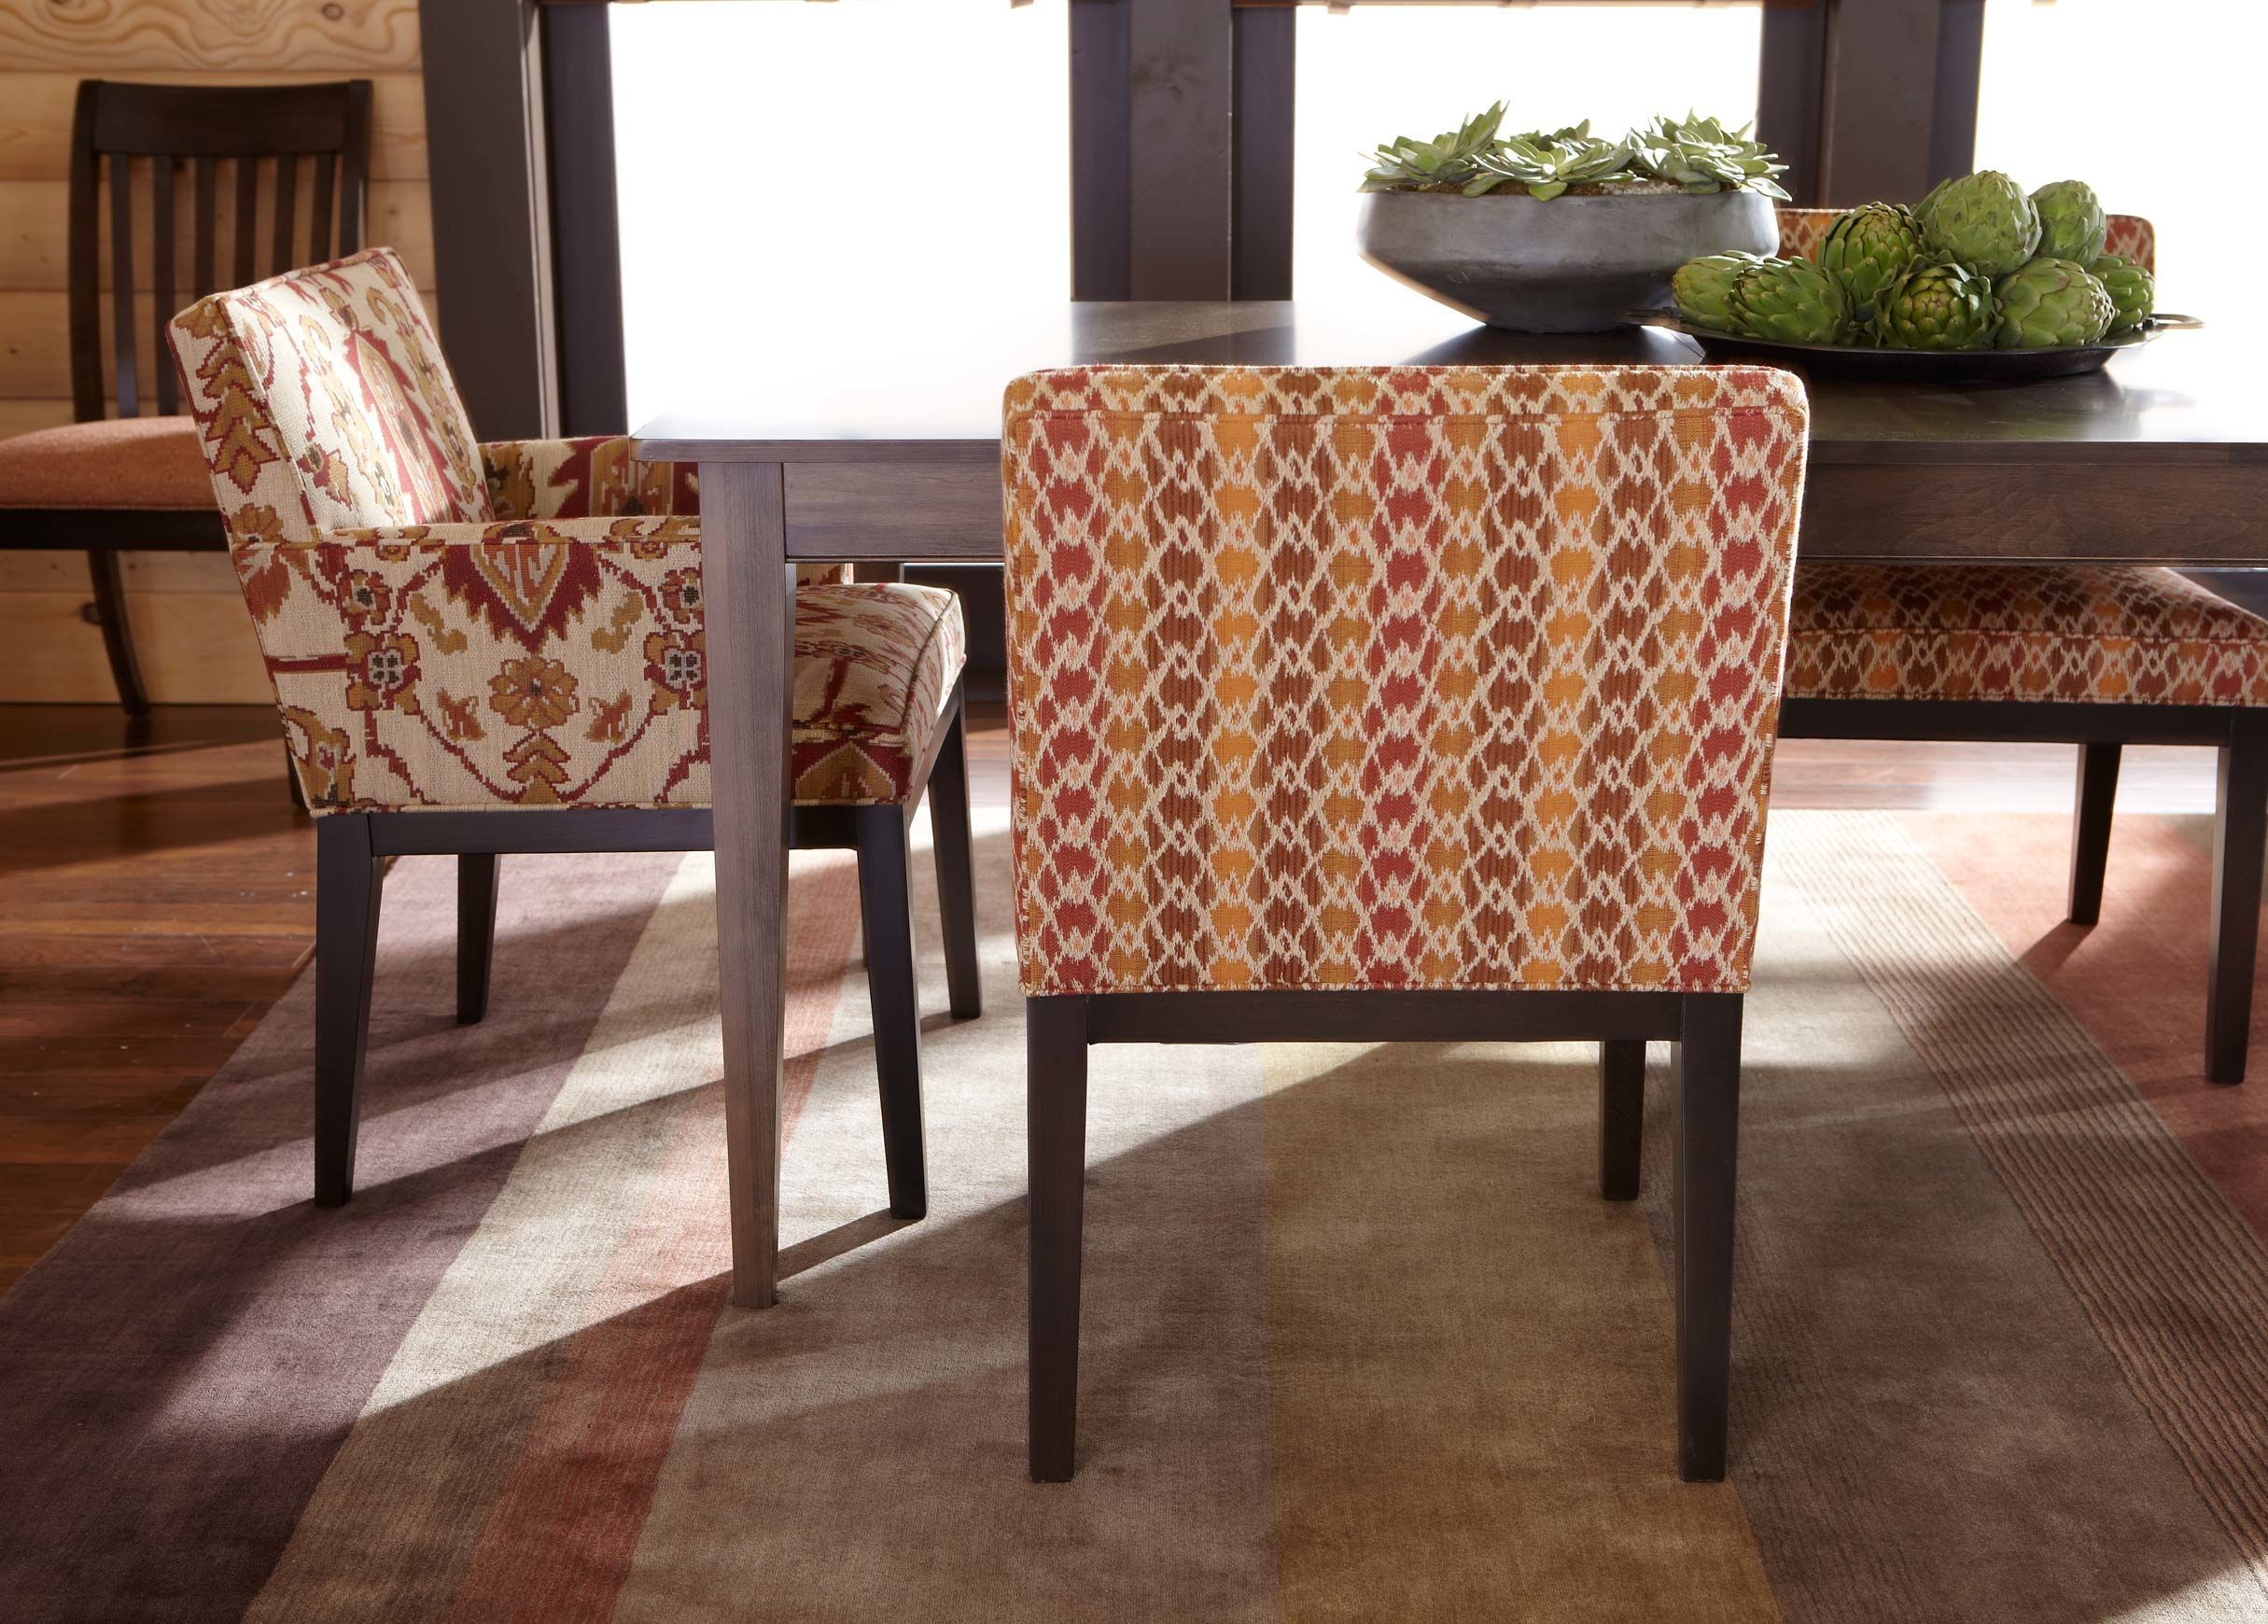 Rowan Dining Table Ethan Allen With Images Dining Room Table